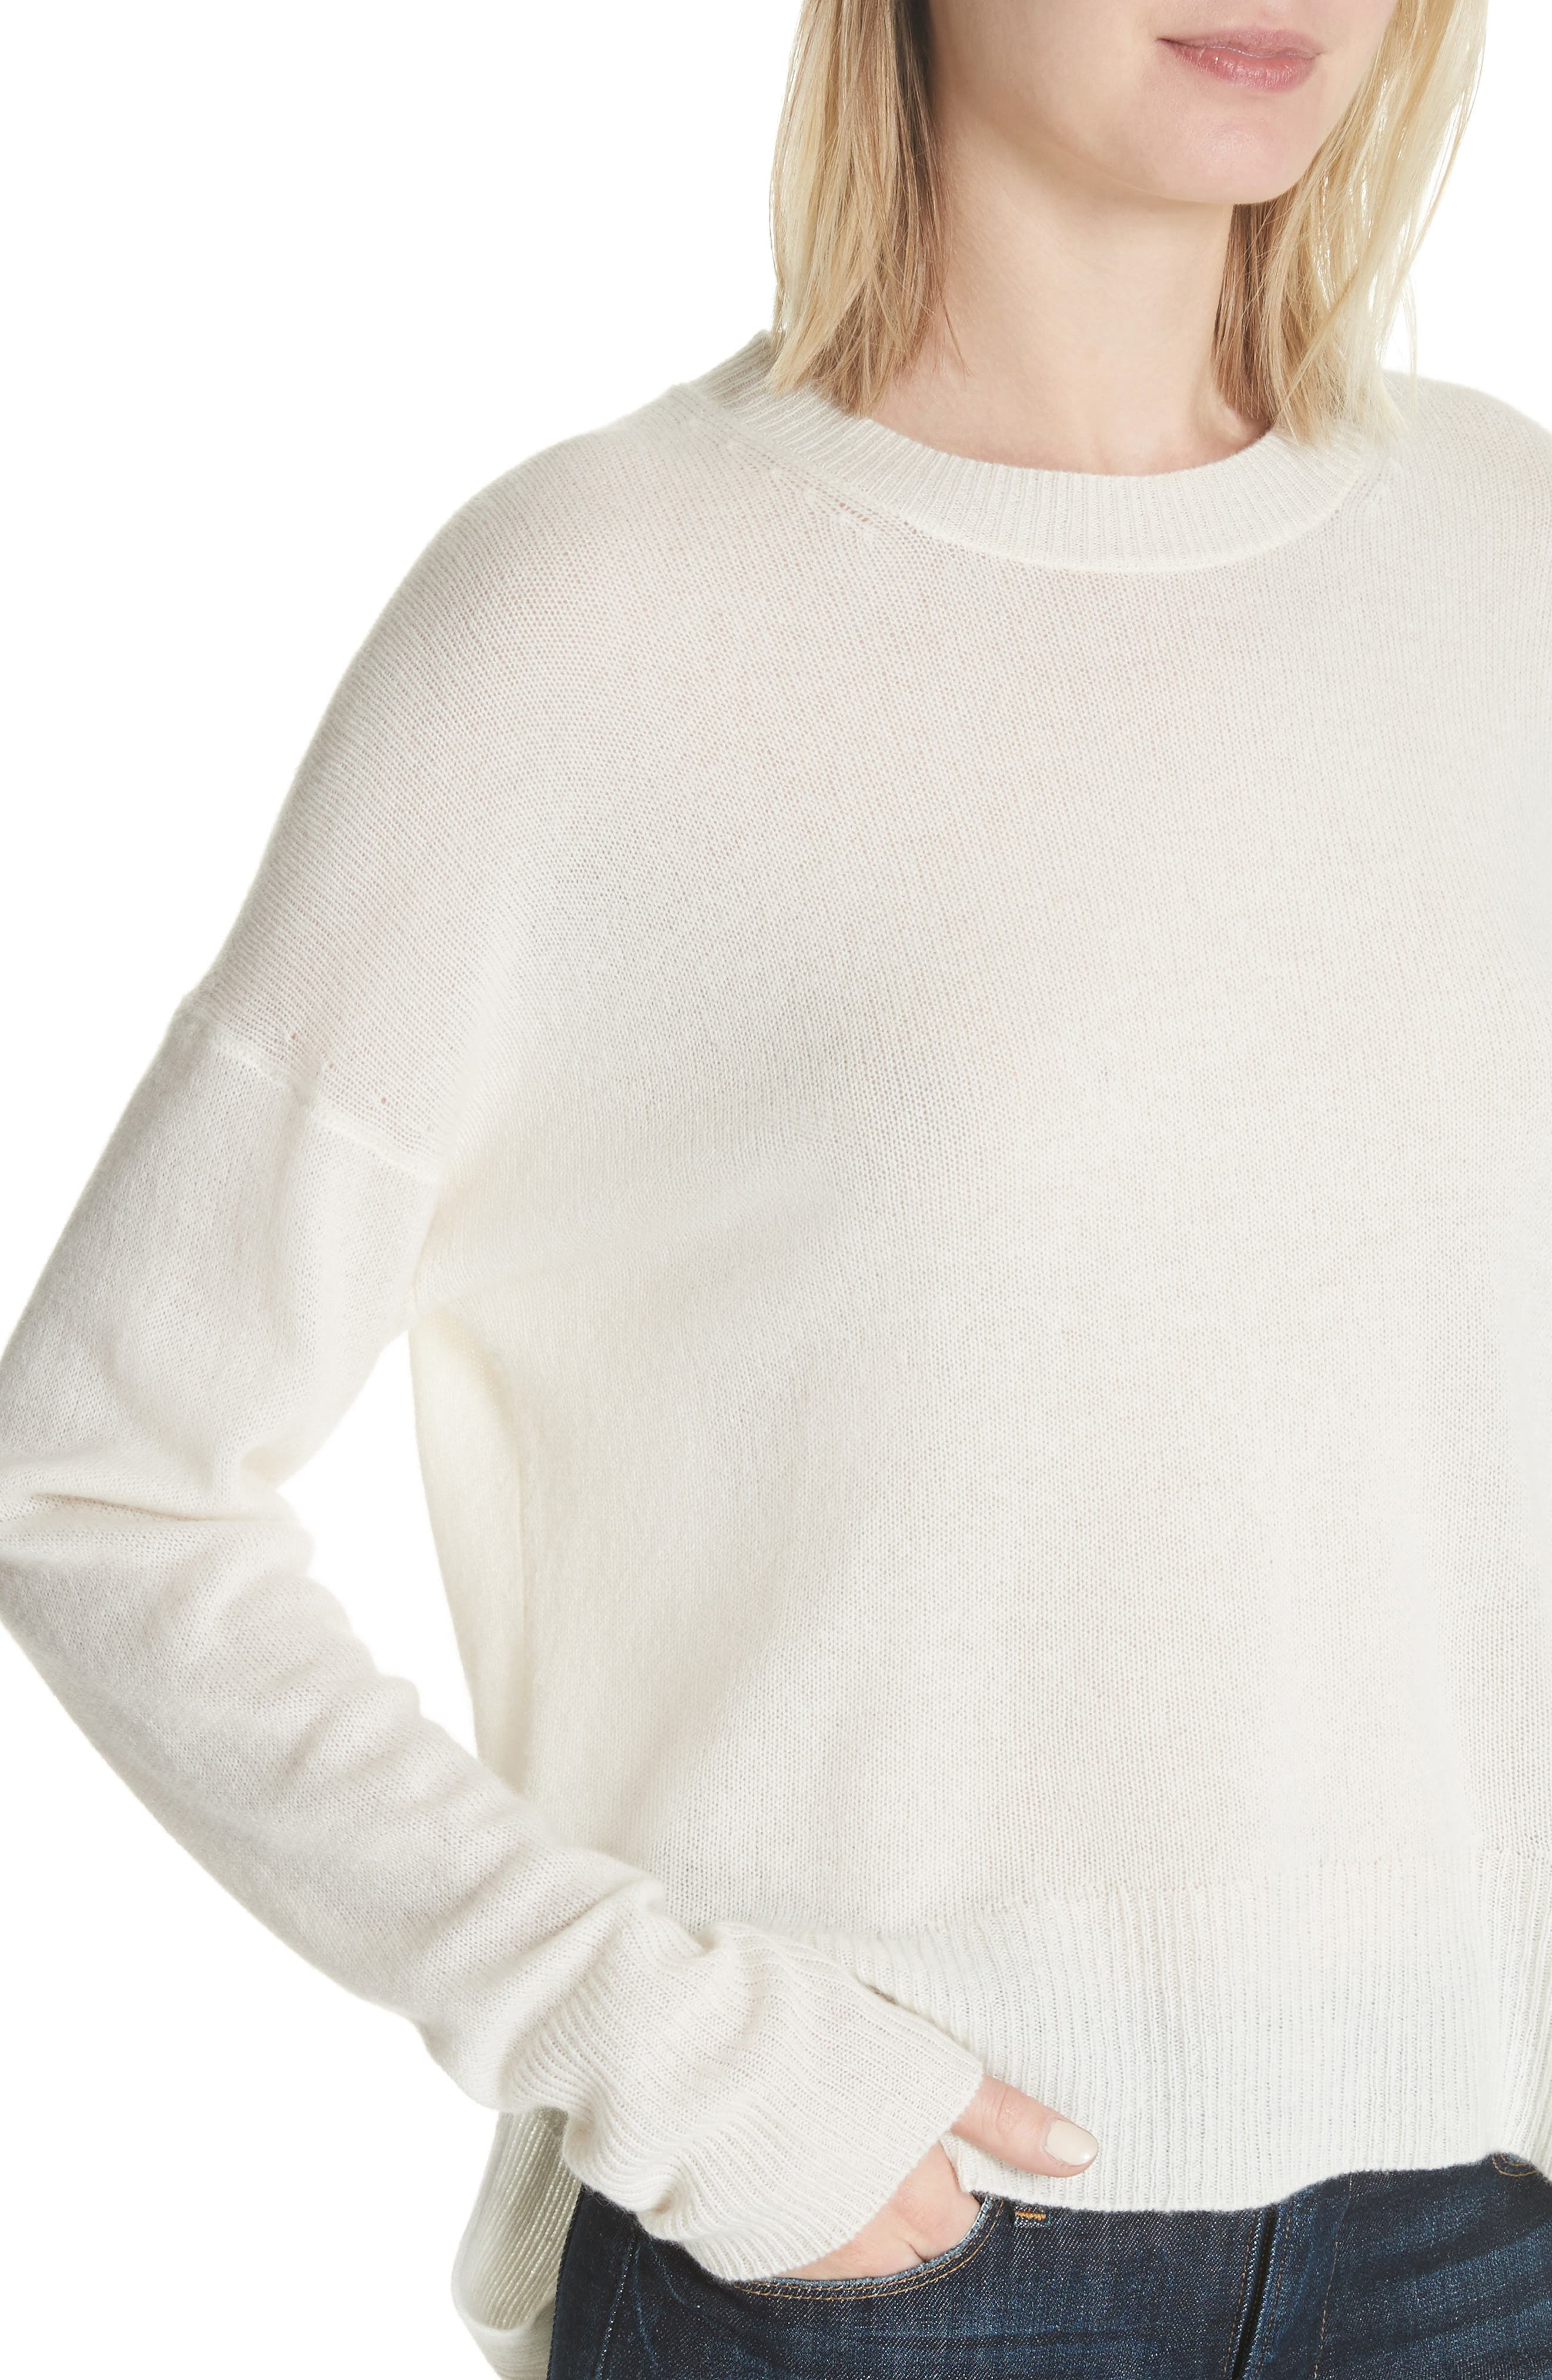 Karenia L Cashmere Sweater,                             Alternate thumbnail 4, color,                             Ivory